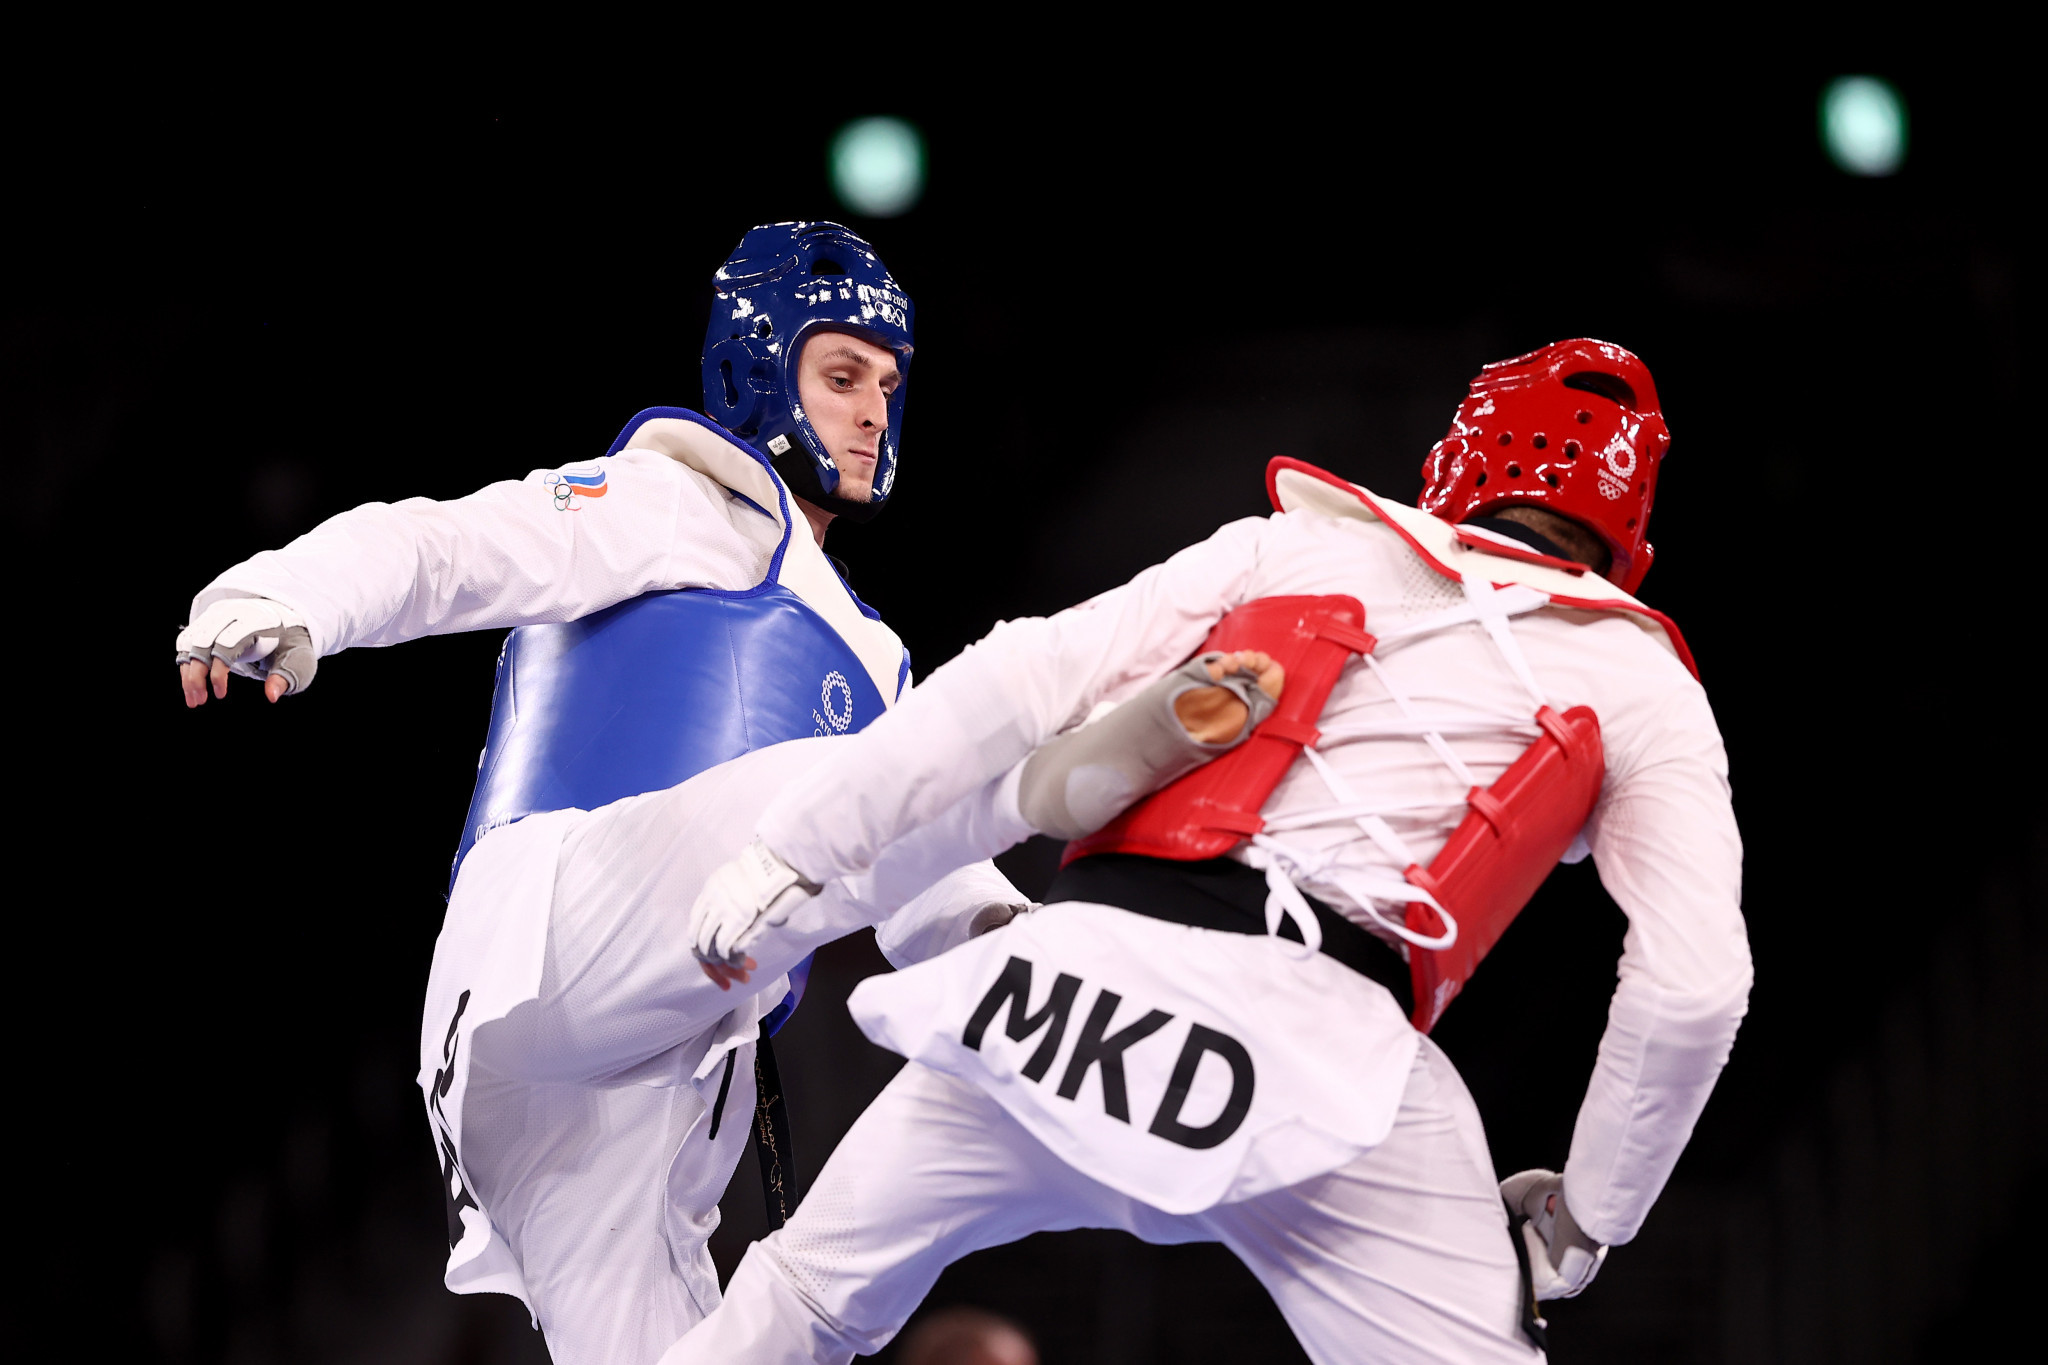 Vladislav Larin helped ROC finish top of the taekwondo medal table at Tokyo 2020 with the men's over-80kg gold ©Getty Images